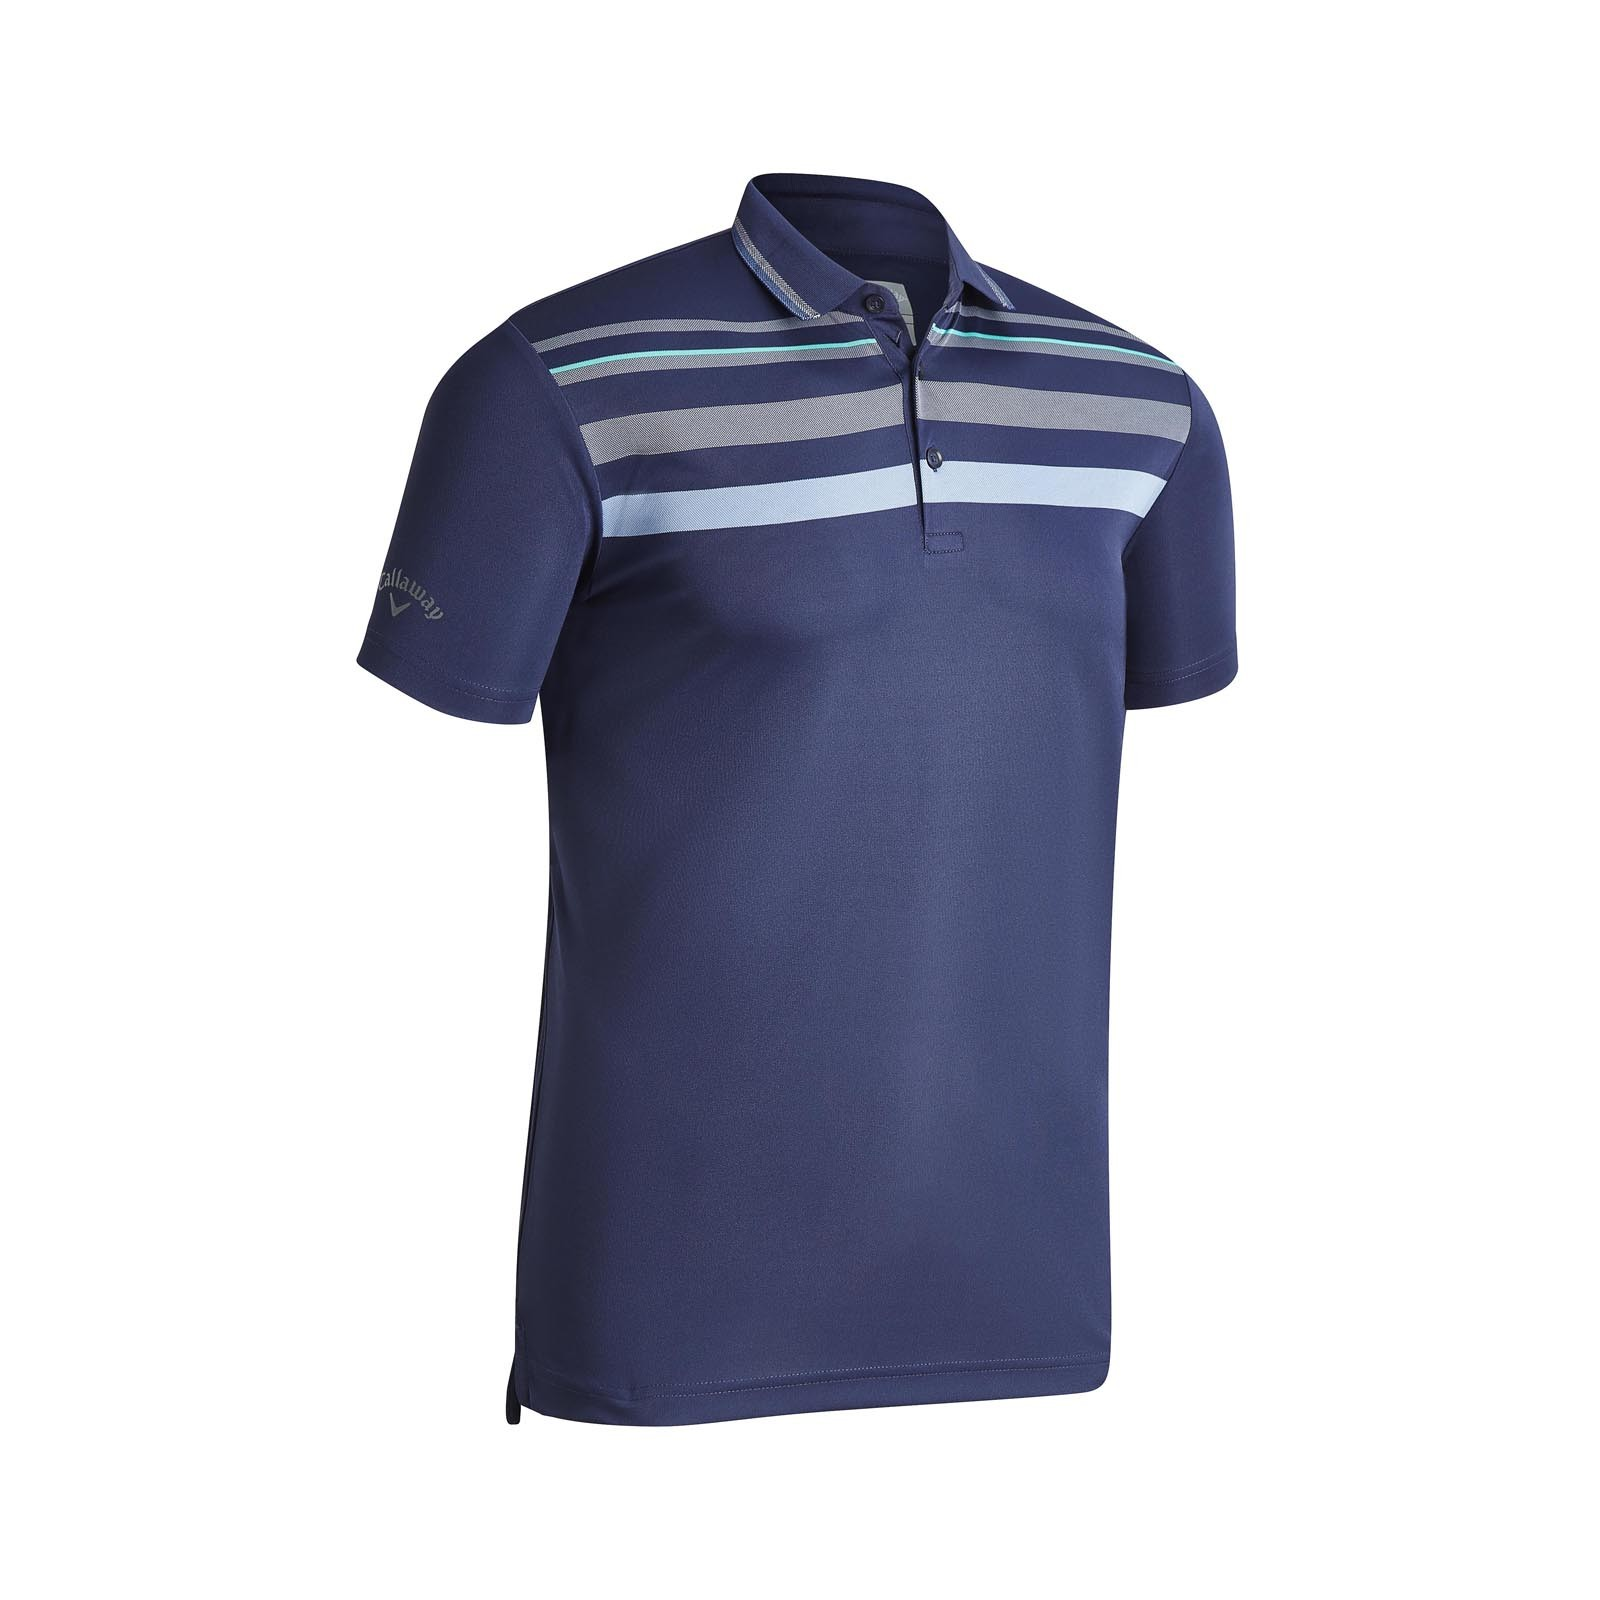 Callaway Birdseye Chest Stripe Polo